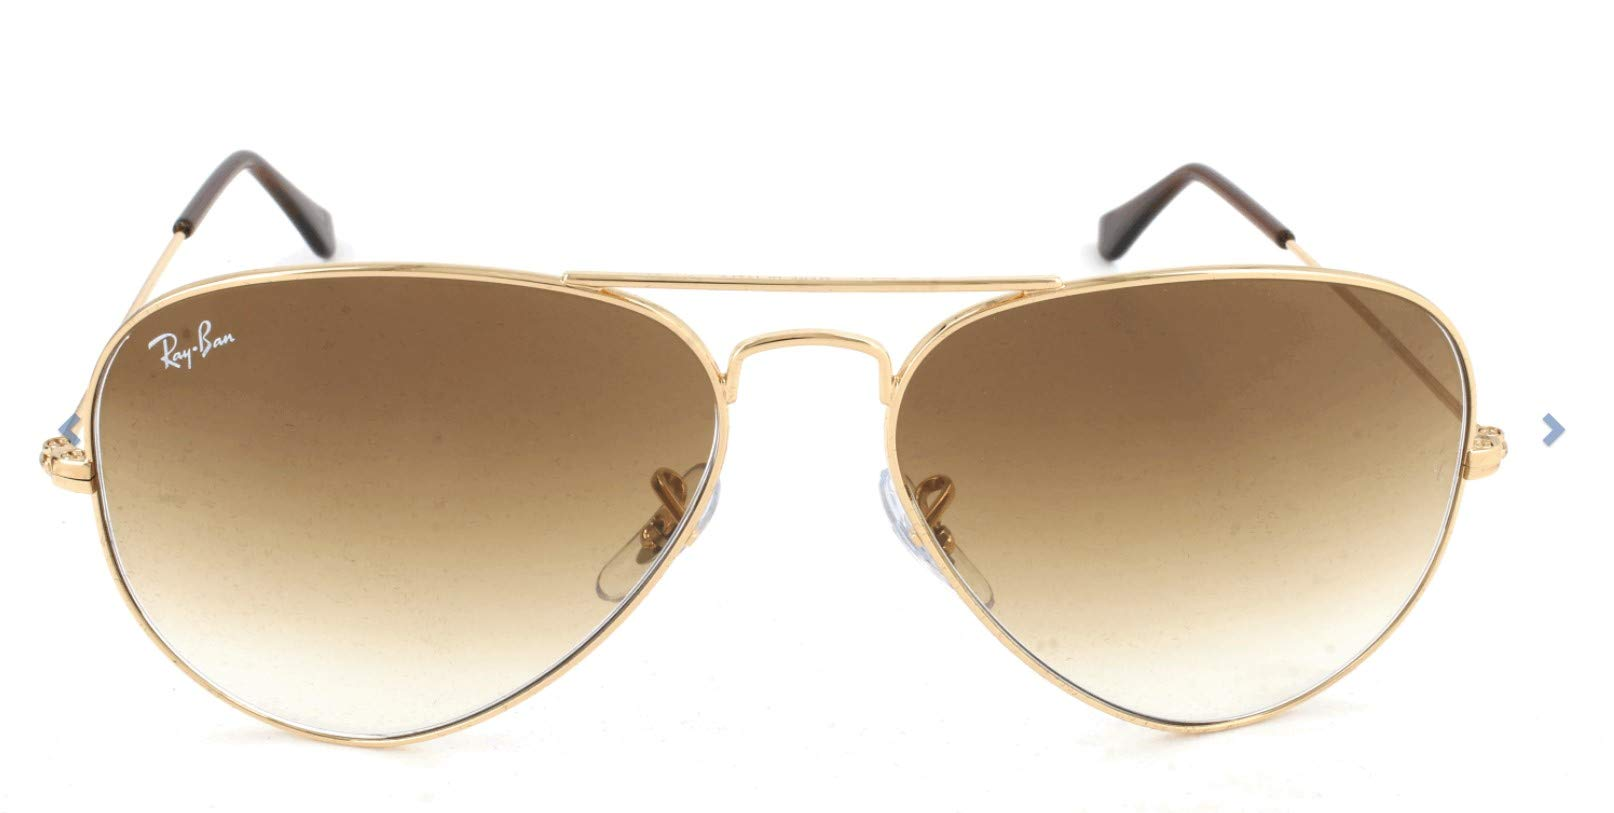 RAY-BAN RB3025 Aviator Large Metal Sunglasses, Gold/Brown Gradient, 55 mm by RAY-BAN